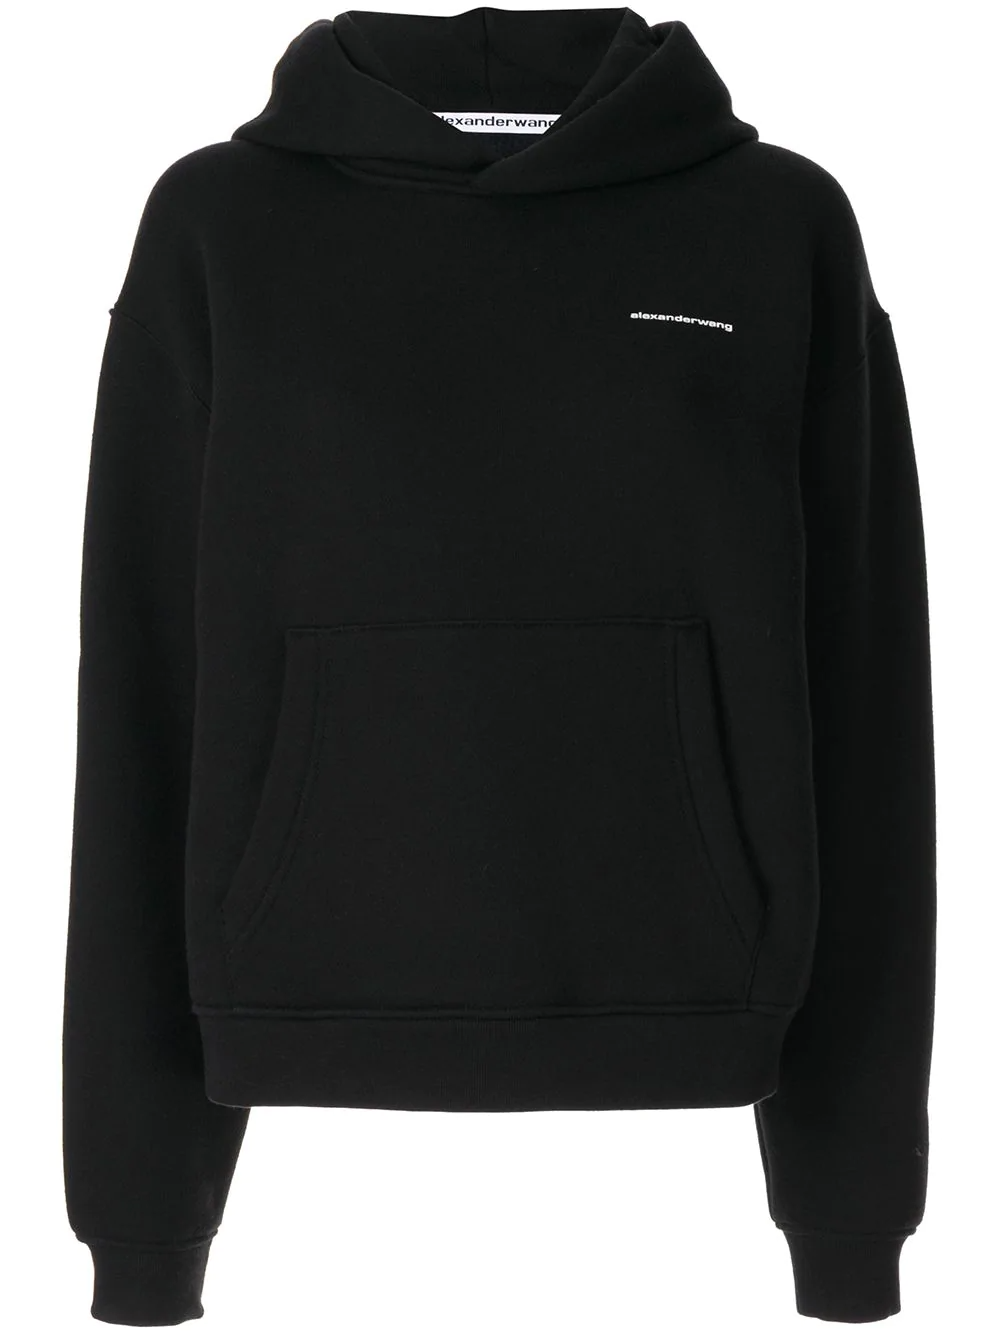 Alexander Wang loose-fit Logo Hoodie - Farfetch -   18 fitness Clothes loose ideas